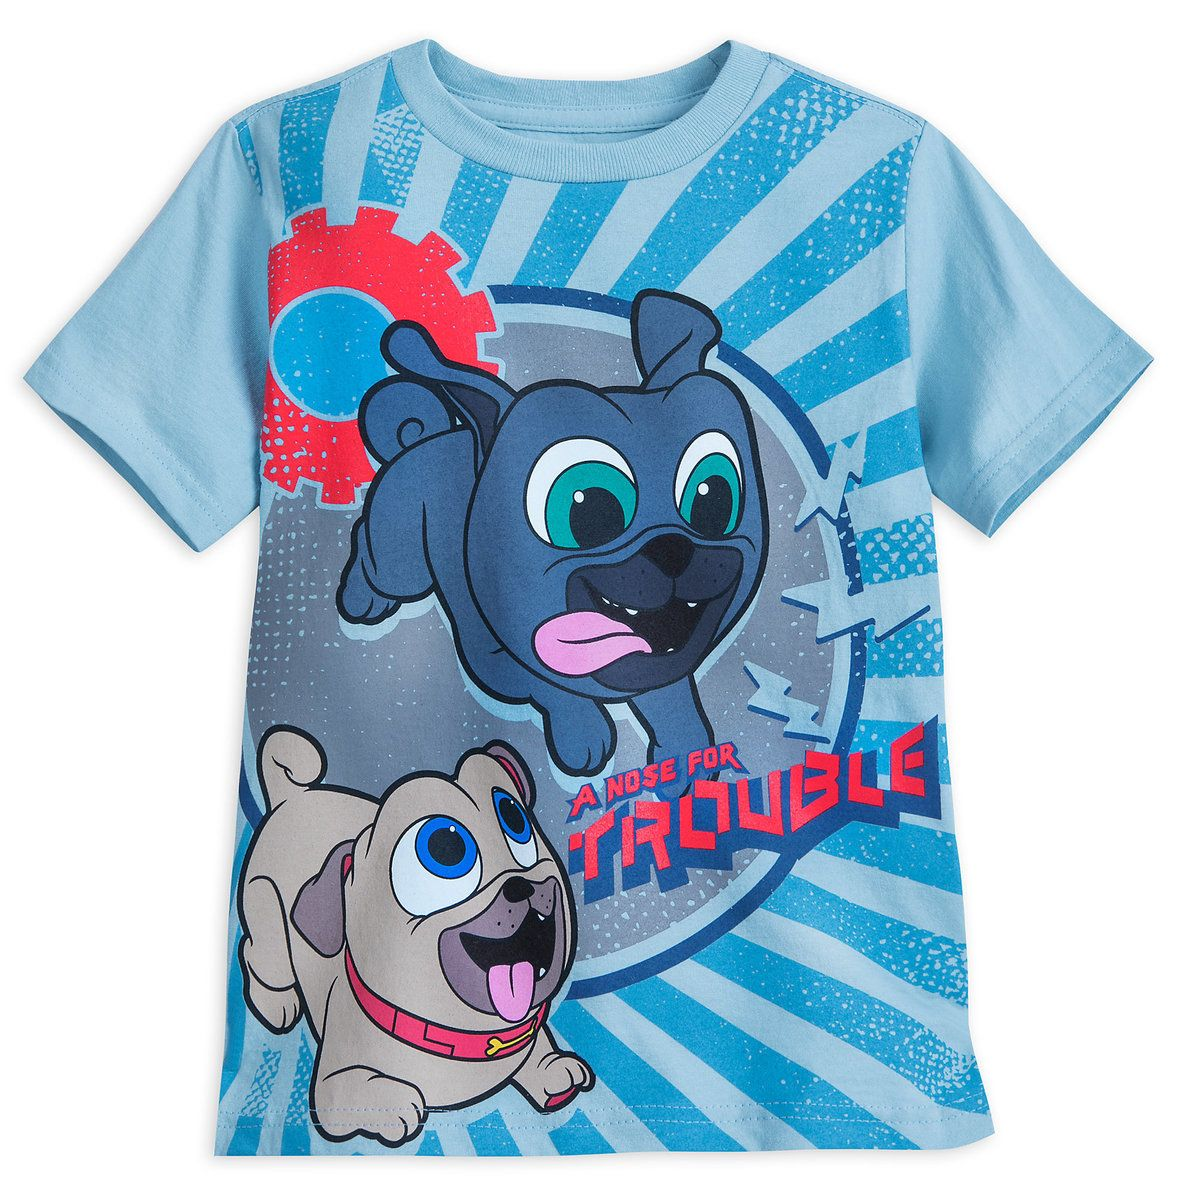 Product Image Of Bingo And Rolly T Shirt For Boys Puppy Dog Pals